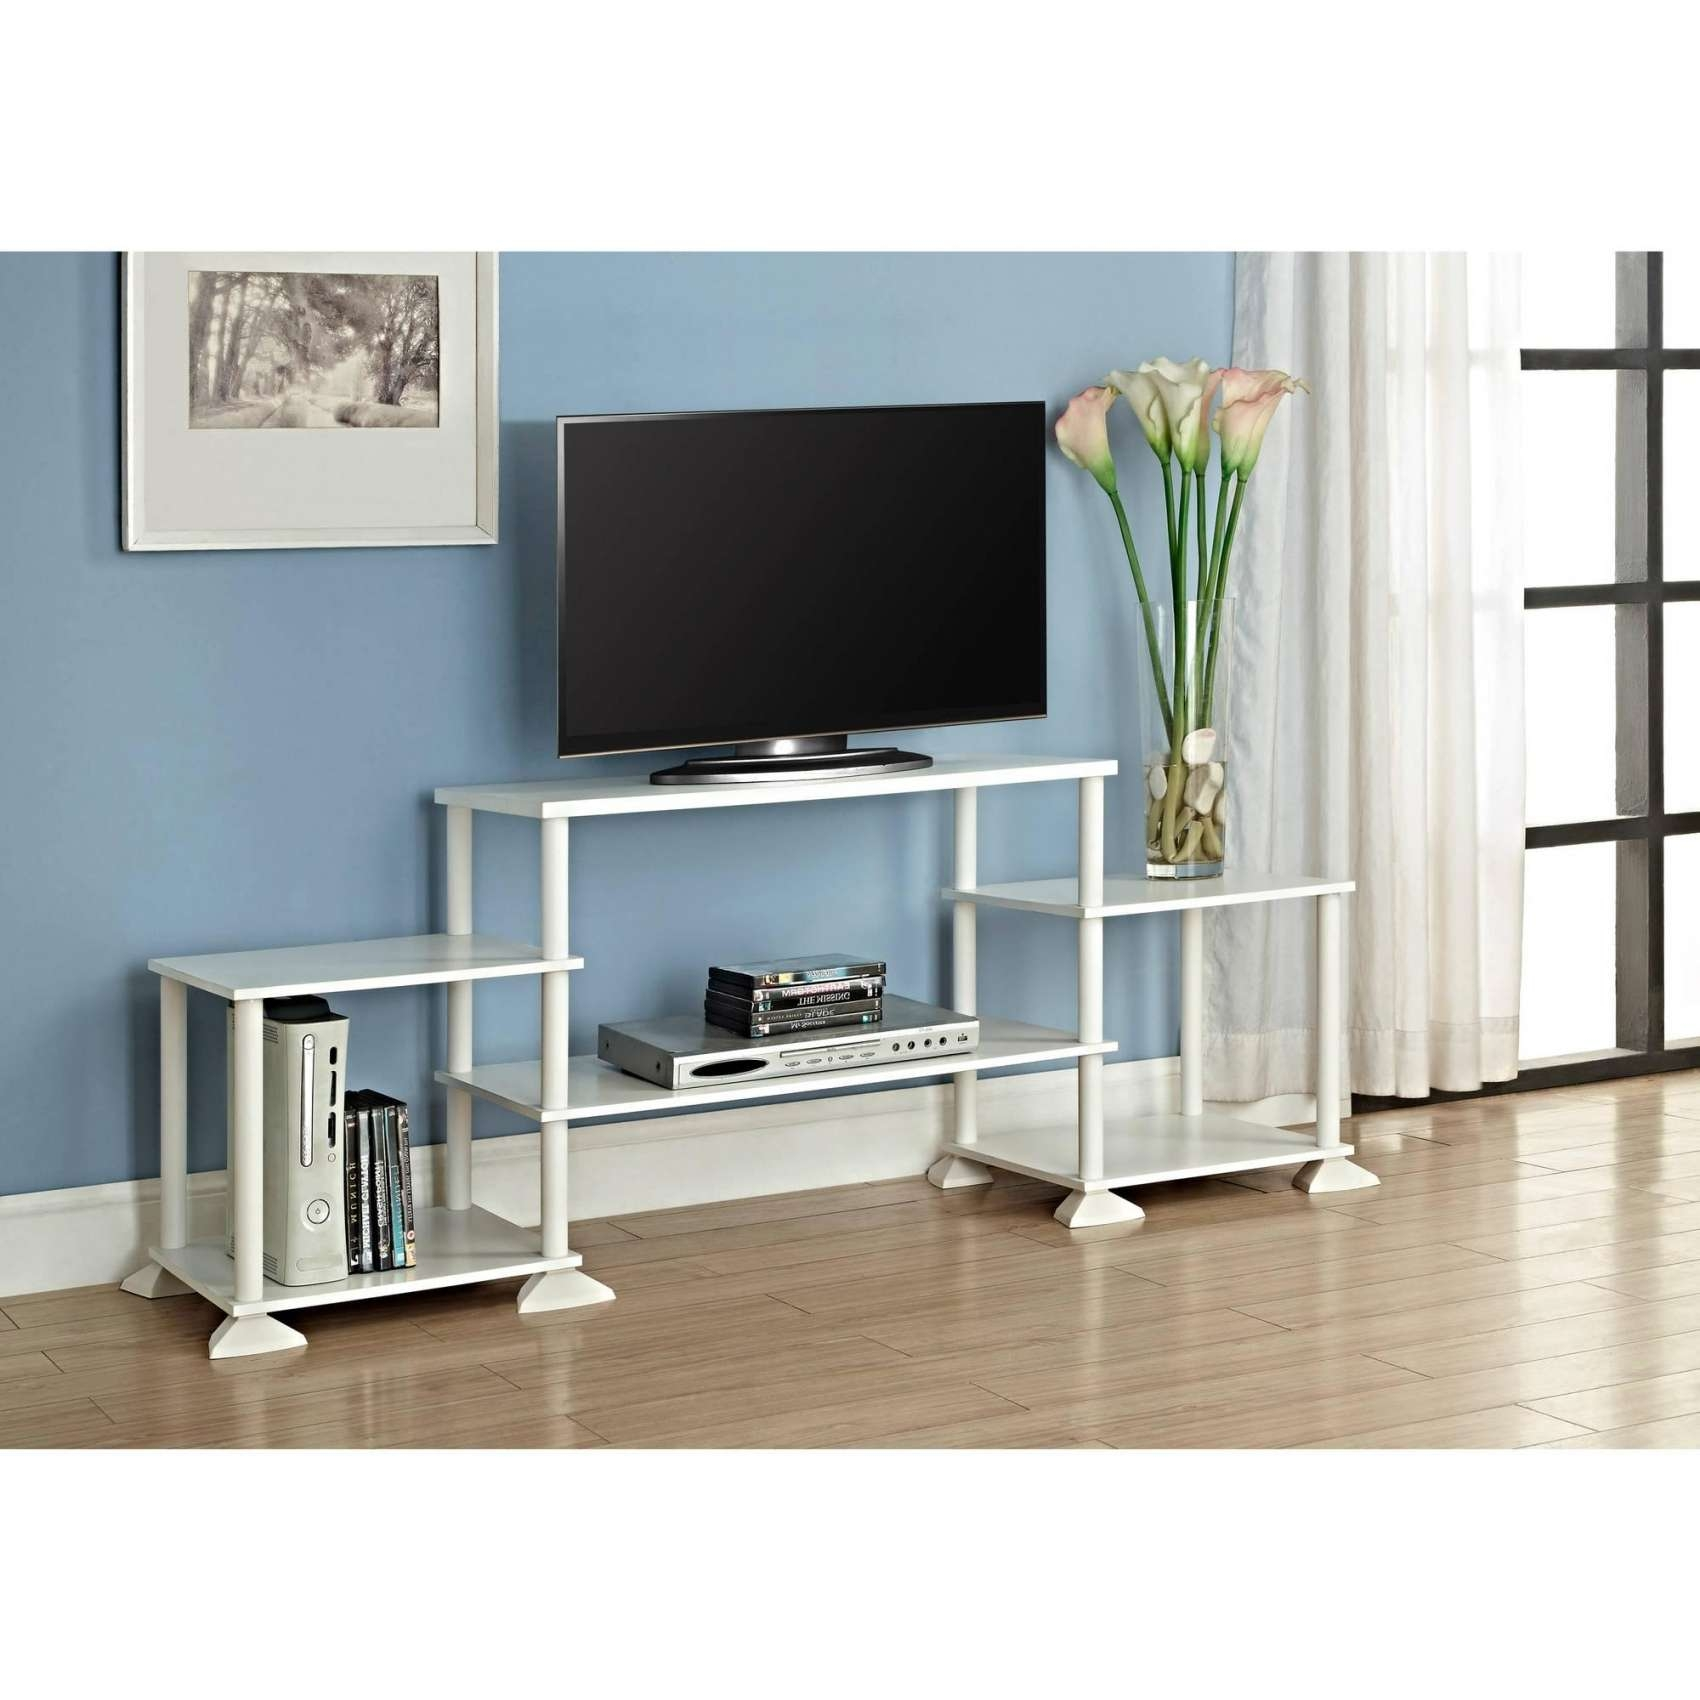 Awesome Tv Stands Cheap Lovely – Best Furniture Gallery With Regard To Cheap White Tv Stands (View 1 of 20)